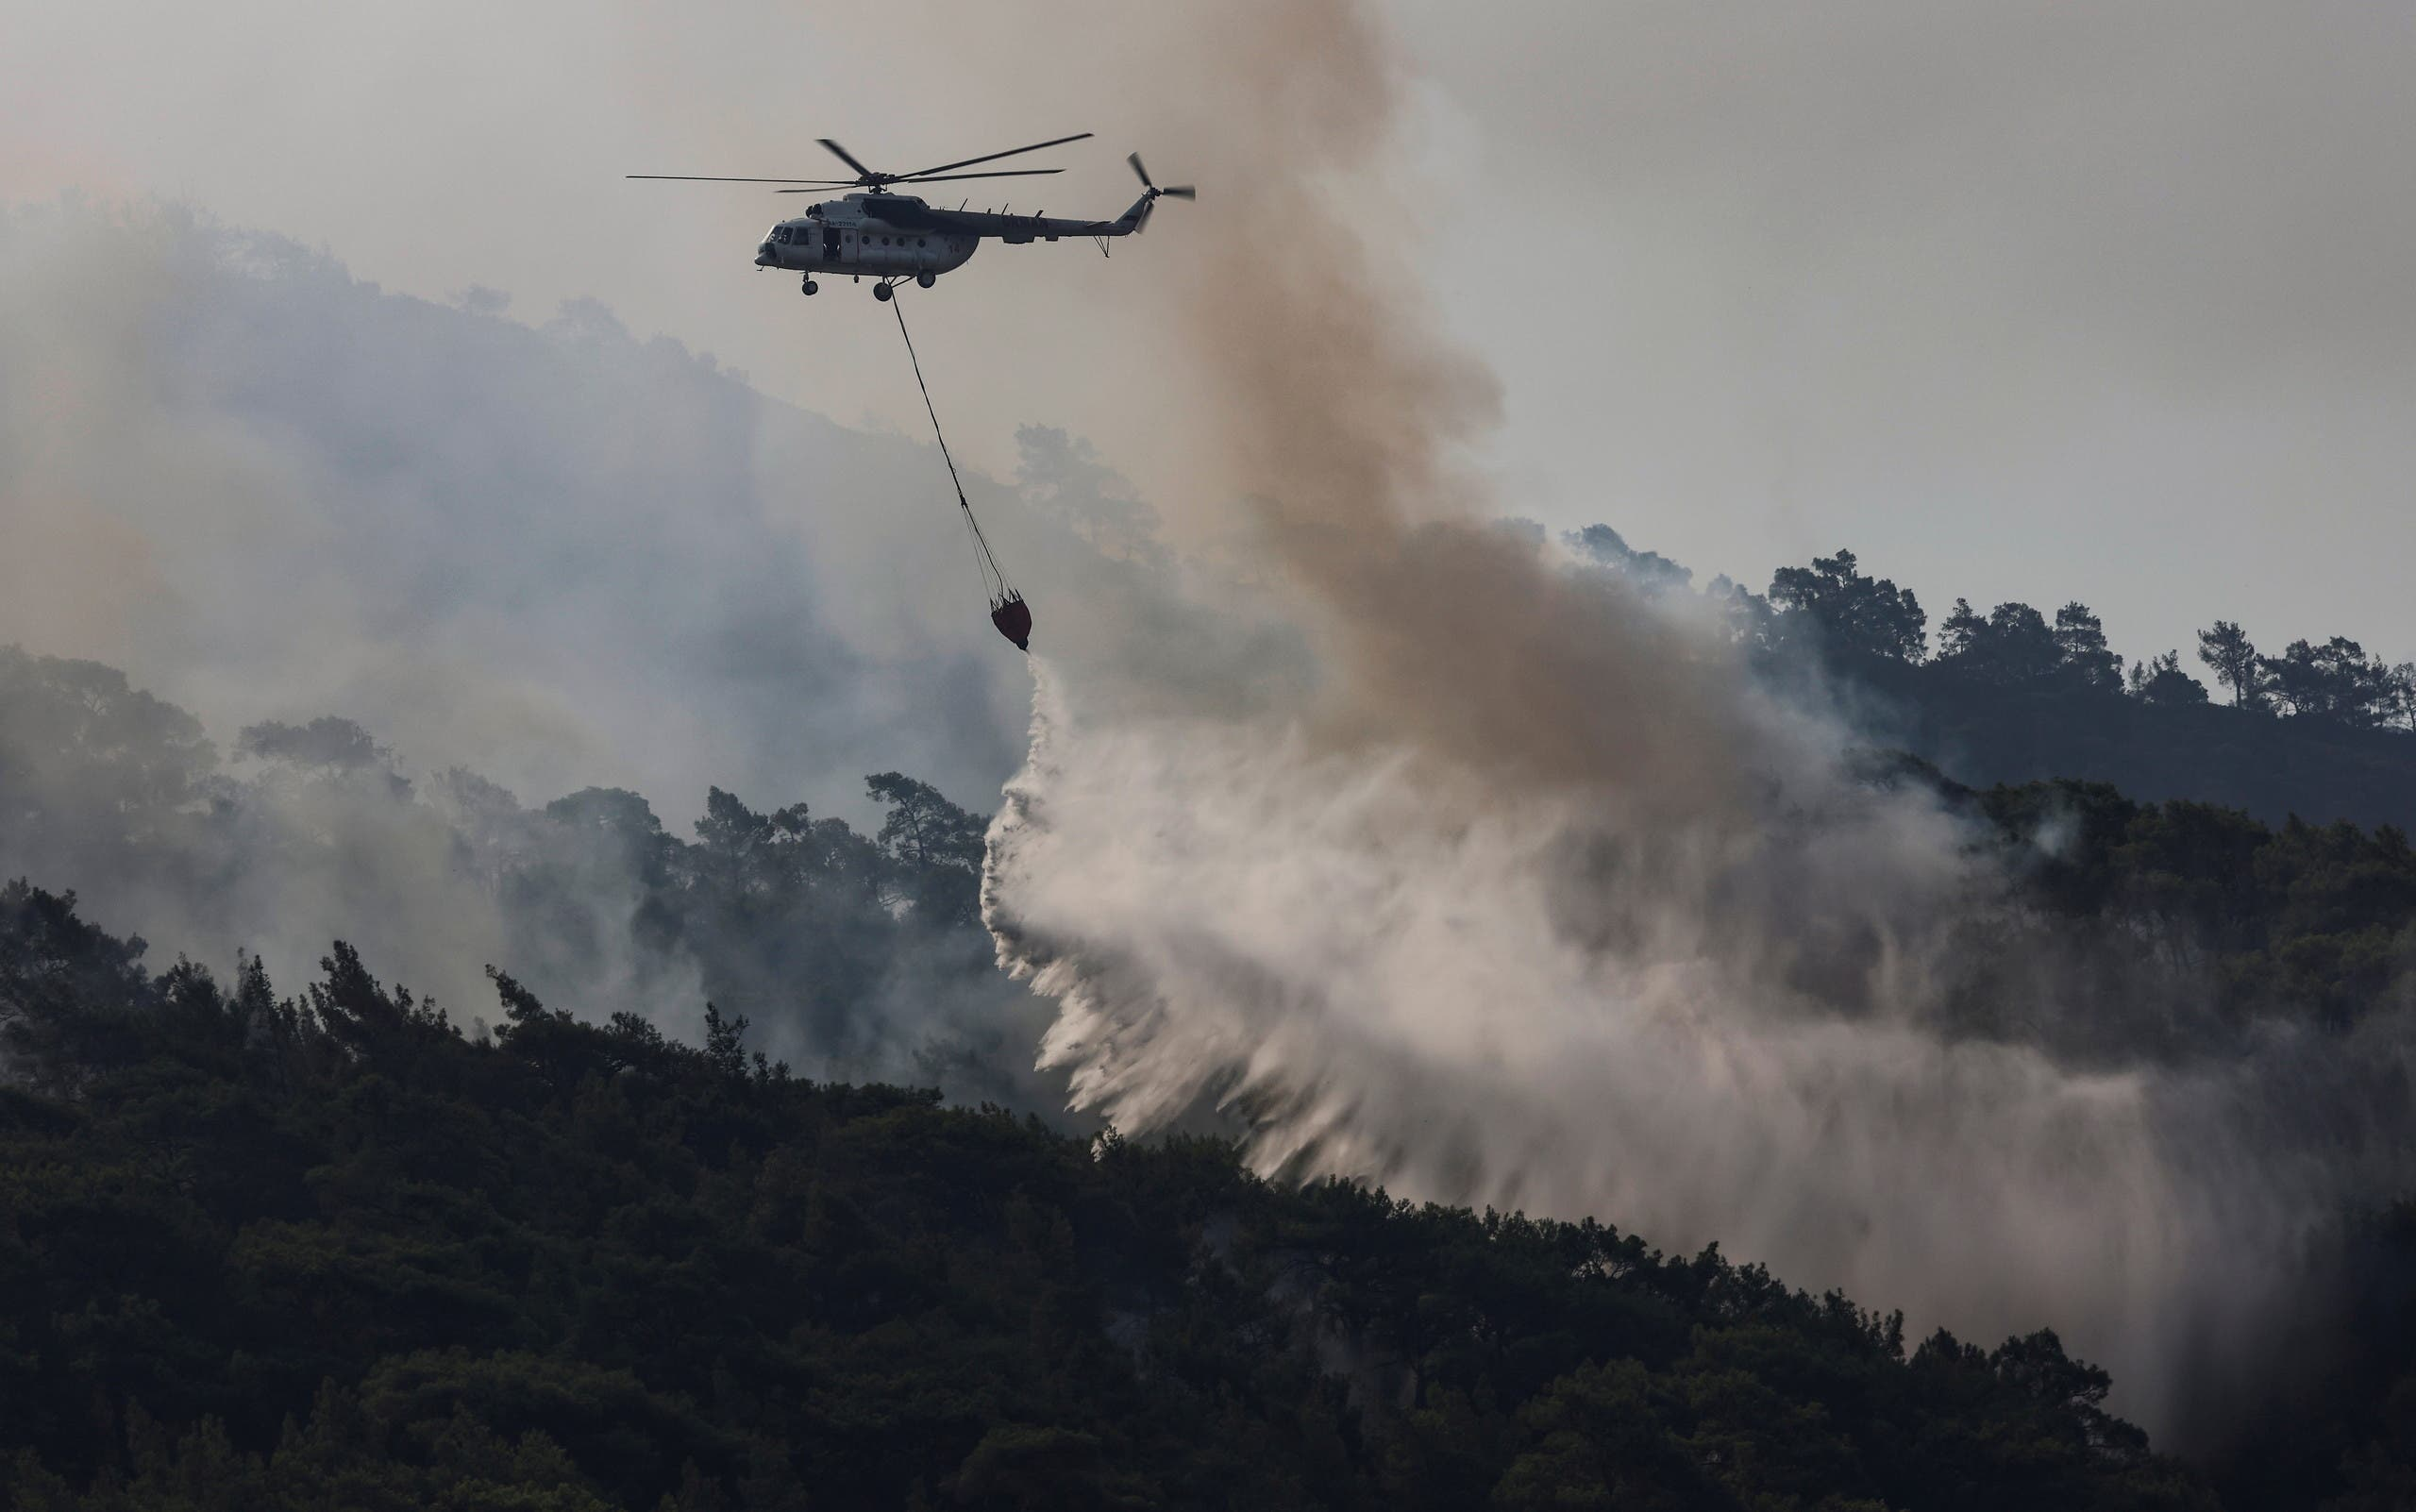 A firefighting helicopter drops water to a wildfire near Marmaris, Turkey, August 2, 2021. (Reuters)